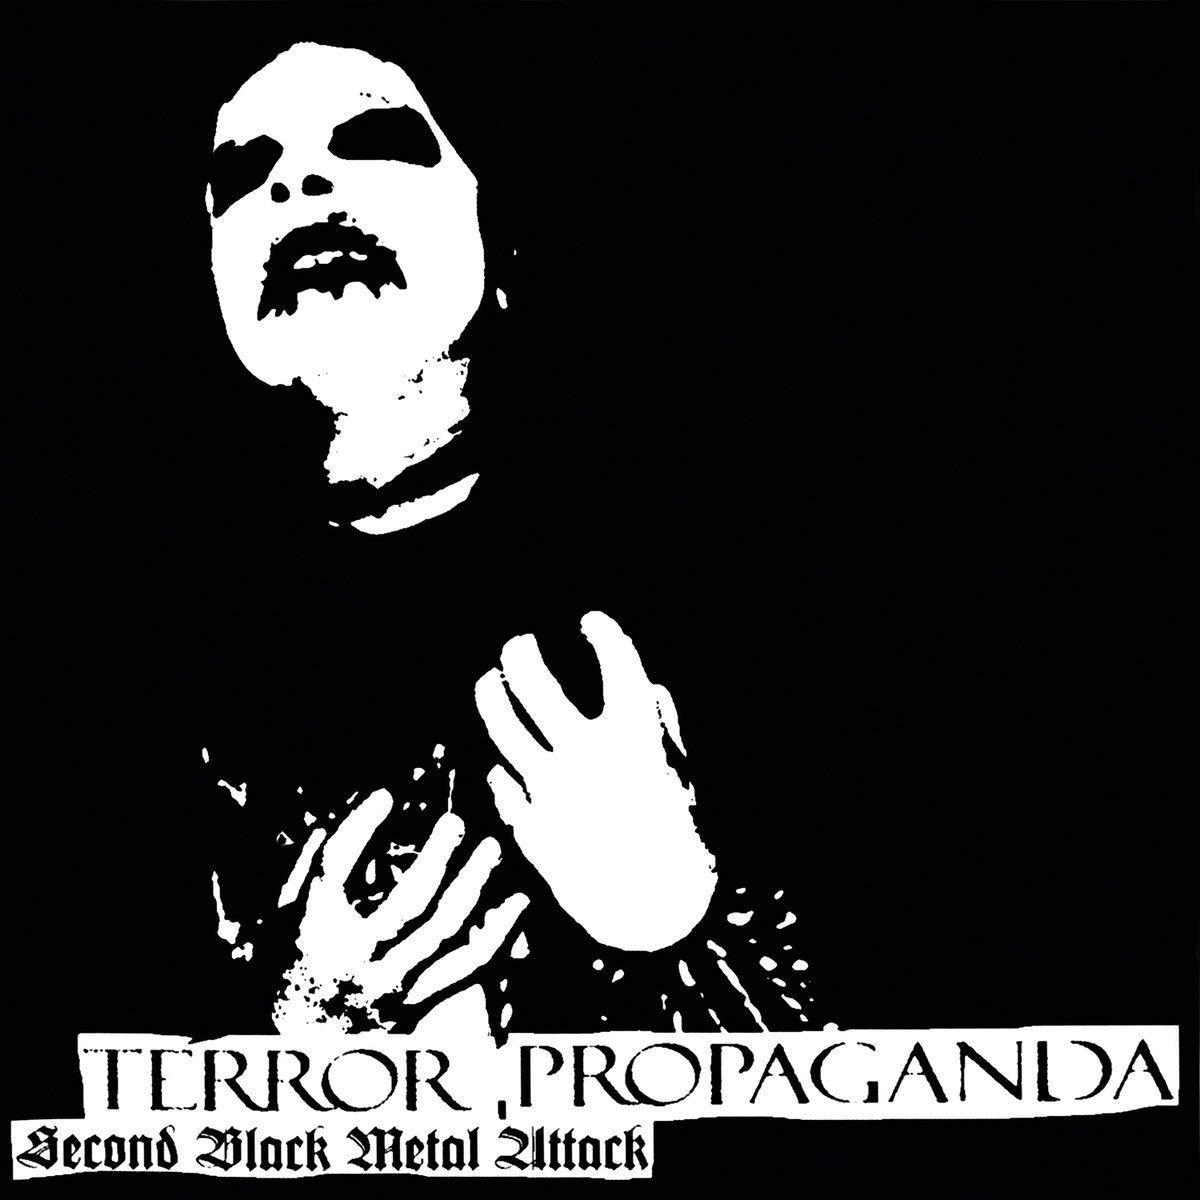 Craft - Terror, Propaganda